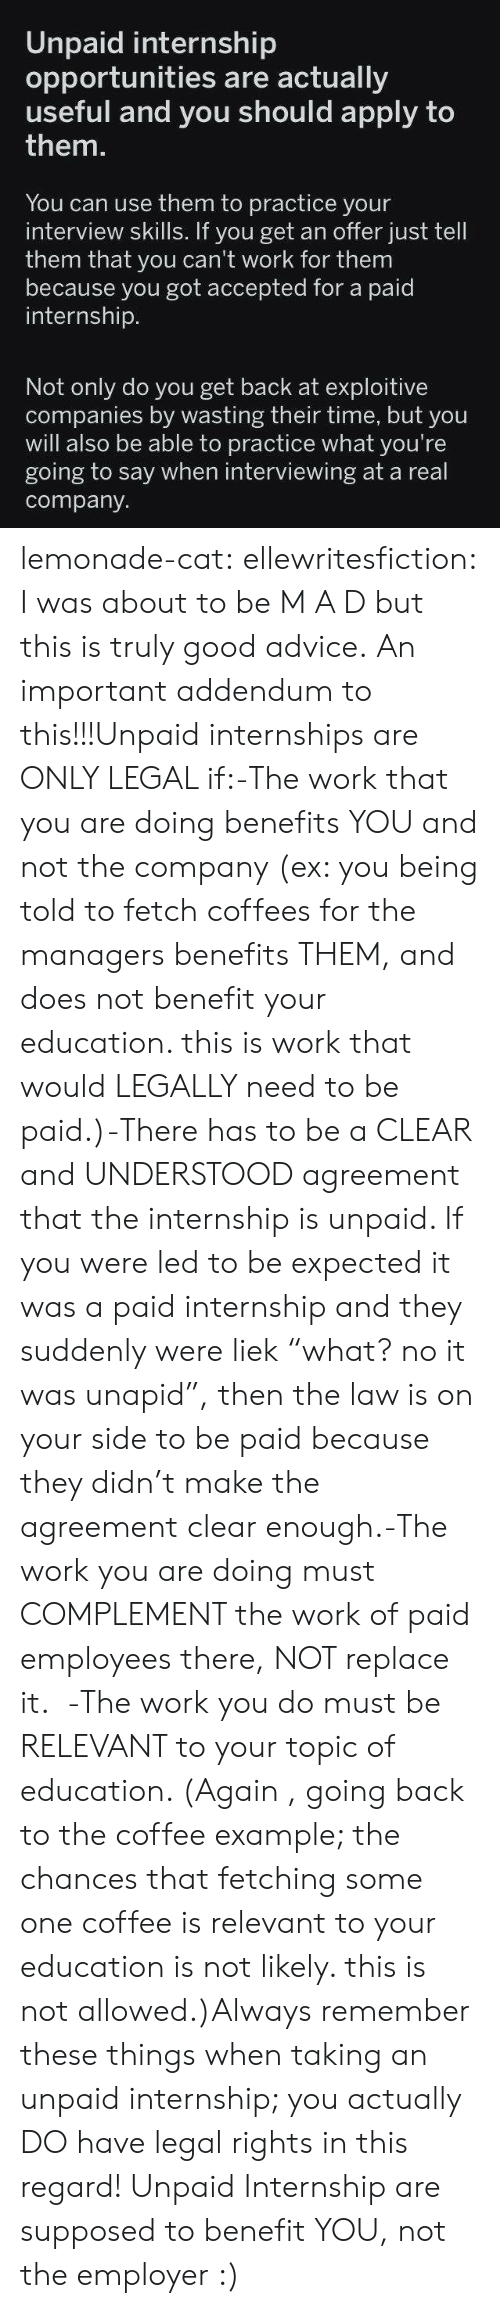 "Advice, Target, and Tumblr: Unpaid internship  opportunities are actually  useful ply to  them.  and you should ap  You can use them to practice your  interview skills. If you get an offer just tell  them that you can't work for them  because you got accepted for a paid  internship.  Not only do you get back at exploitive  companies by wasting their time, but you  will also be able to practice what you're  going to say when interviewing at a real  company lemonade-cat: ellewritesfiction: I was about to be M A D but this is truly good advice. An important addendum to this!!!Unpaid internships are ONLY LEGAL if:-The work that you are doing benefits YOU and not the company (ex: you being told to fetch coffees for the managers benefits THEM, and does not benefit your education. this is work that would LEGALLY need to be paid.)-There has to be a CLEAR and UNDERSTOOD agreement that the internship is unpaid. If you were led to be expected it was a paid internship and they suddenly were liek ""what? no it was unapid"", then the law is on your side to be paid because they didn't make the agreement clear enough.-The work you are doing must COMPLEMENT the work of paid employees there, NOT replace it.  -The work you do must be RELEVANT to your topic of education. (Again , going back to the coffee example; the chances that fetching some one coffee is relevant to your education is not likely. this is not allowed.)Always remember these things when taking an unpaid internship; you actually DO have legal rights in this regard! Unpaid Internship are supposed to benefit YOU, not the employer :)"